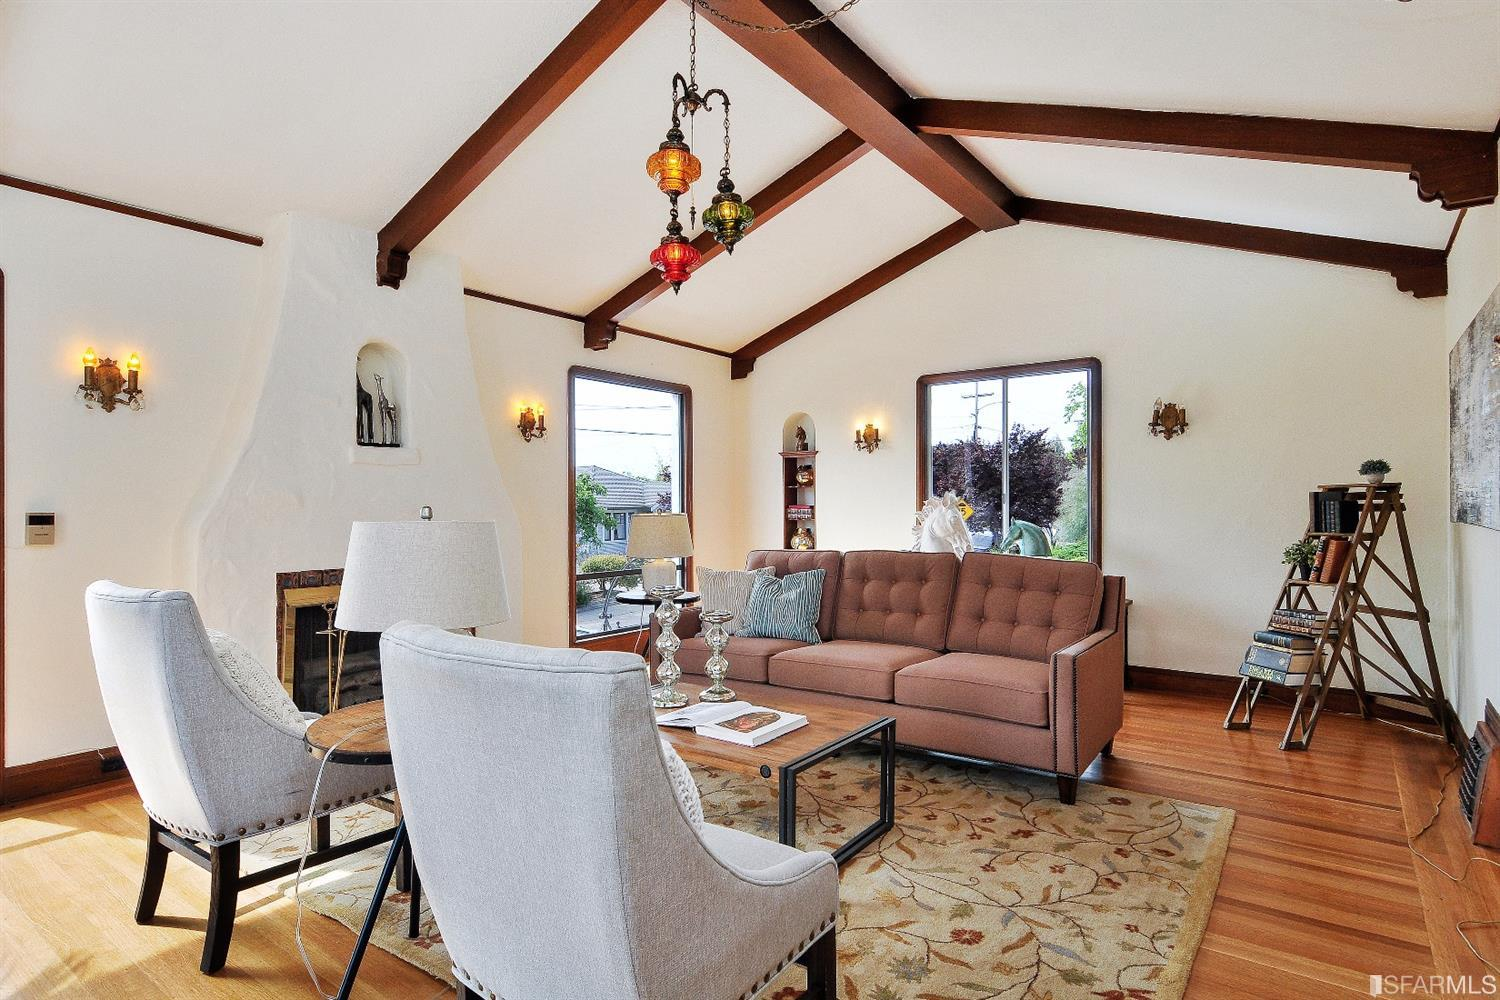 Additional photo for property listing at 3745 Rhoda Avenue  OAKLAND, CALIFORNIA 94602